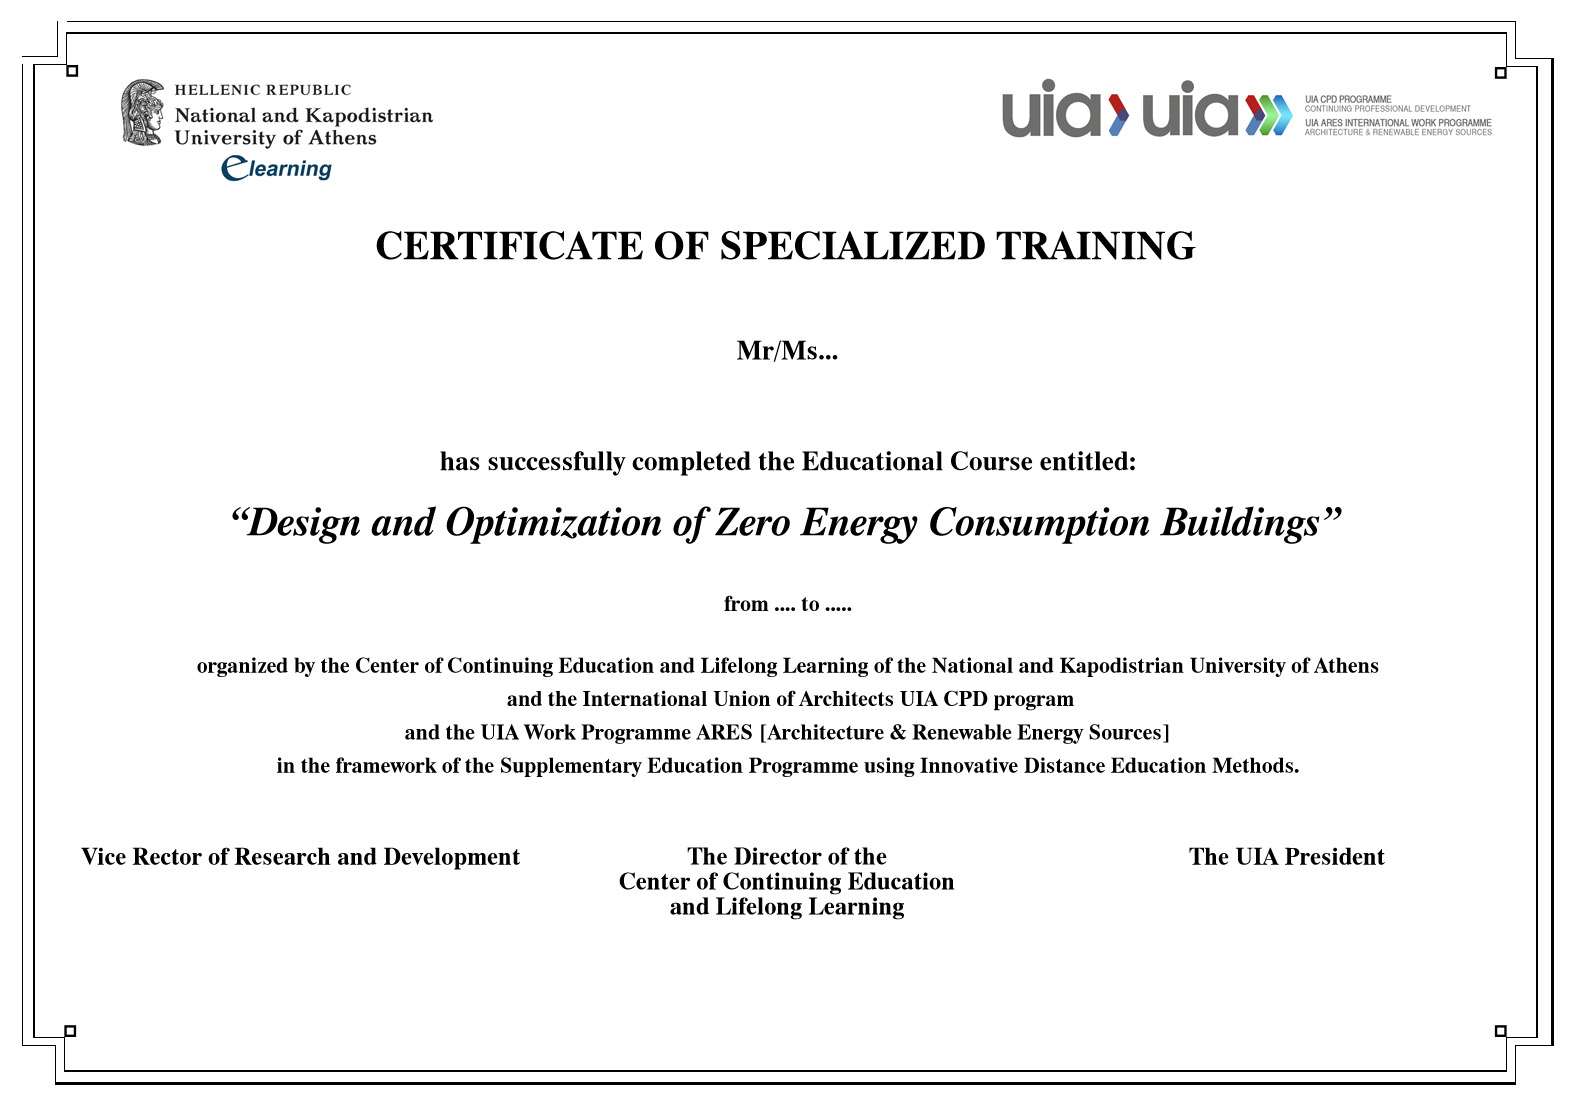 Certificate of Specialized Training (UoA-UIA) | E-Learning ...